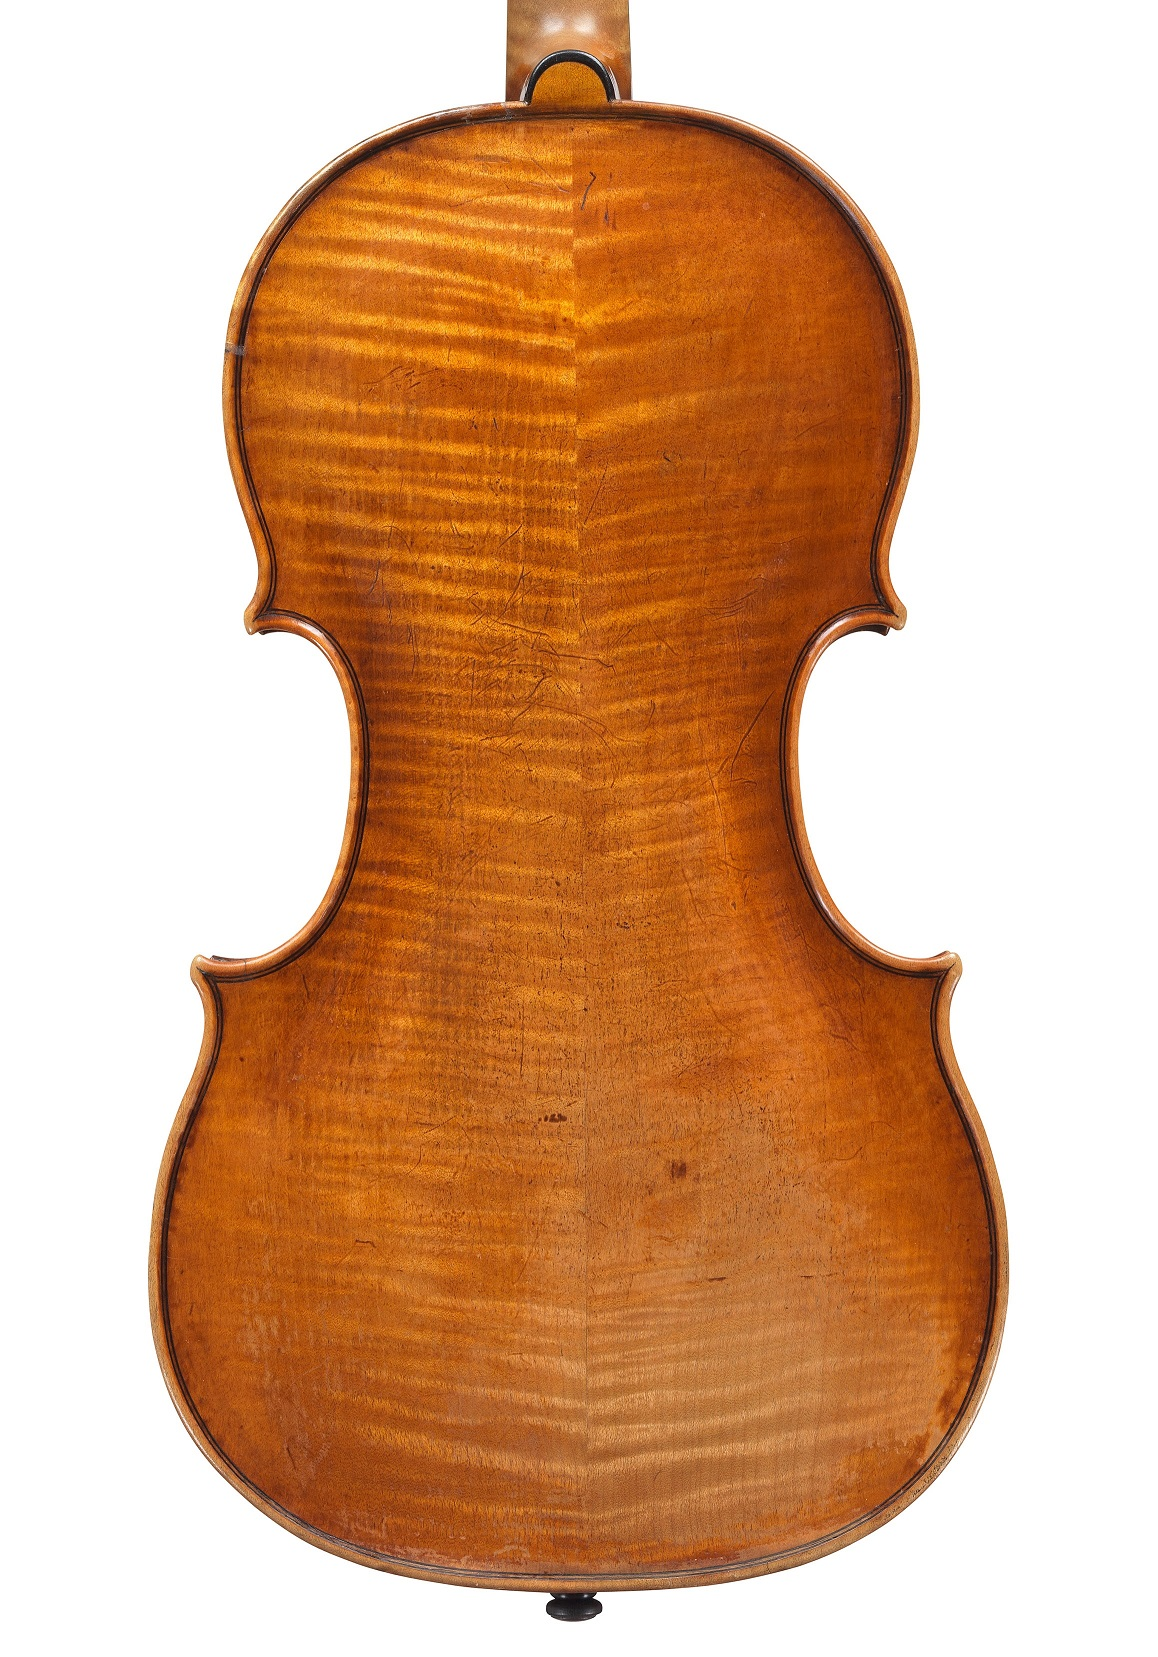 Back of 'The King' violin by Jacob Stainer, 1659